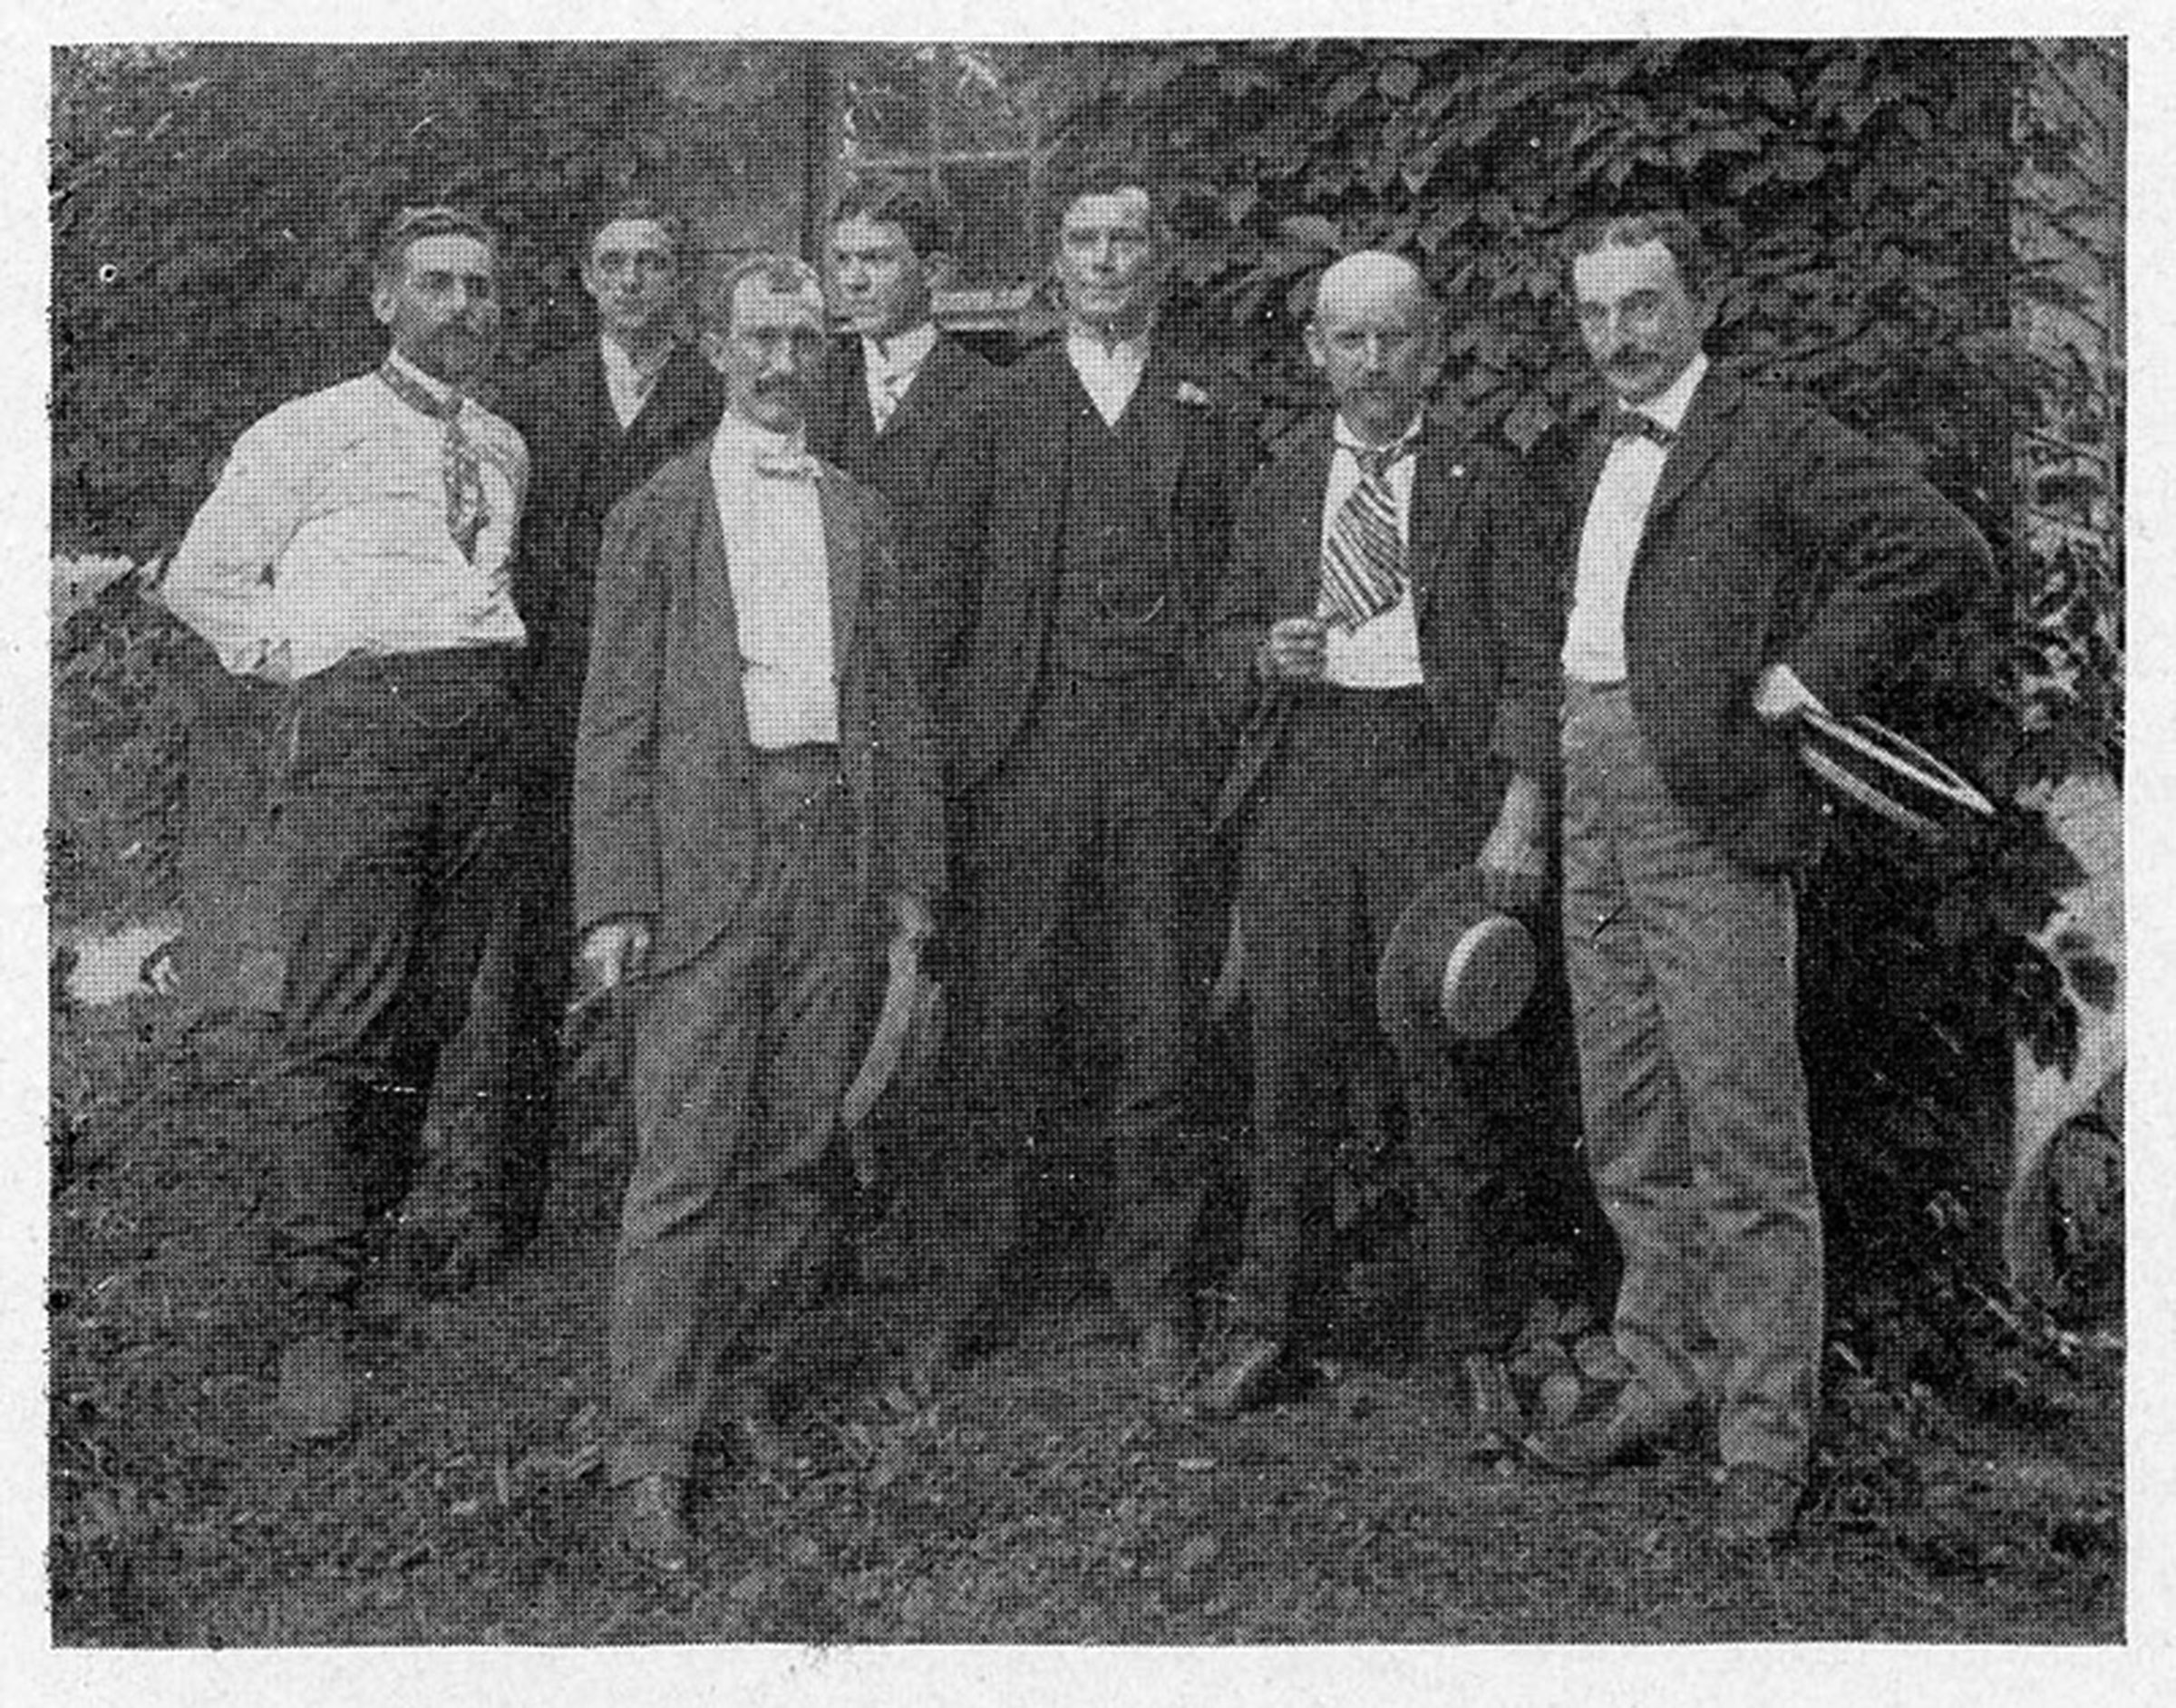 Pennock with members of the Delaware Valley Ornithological Club.